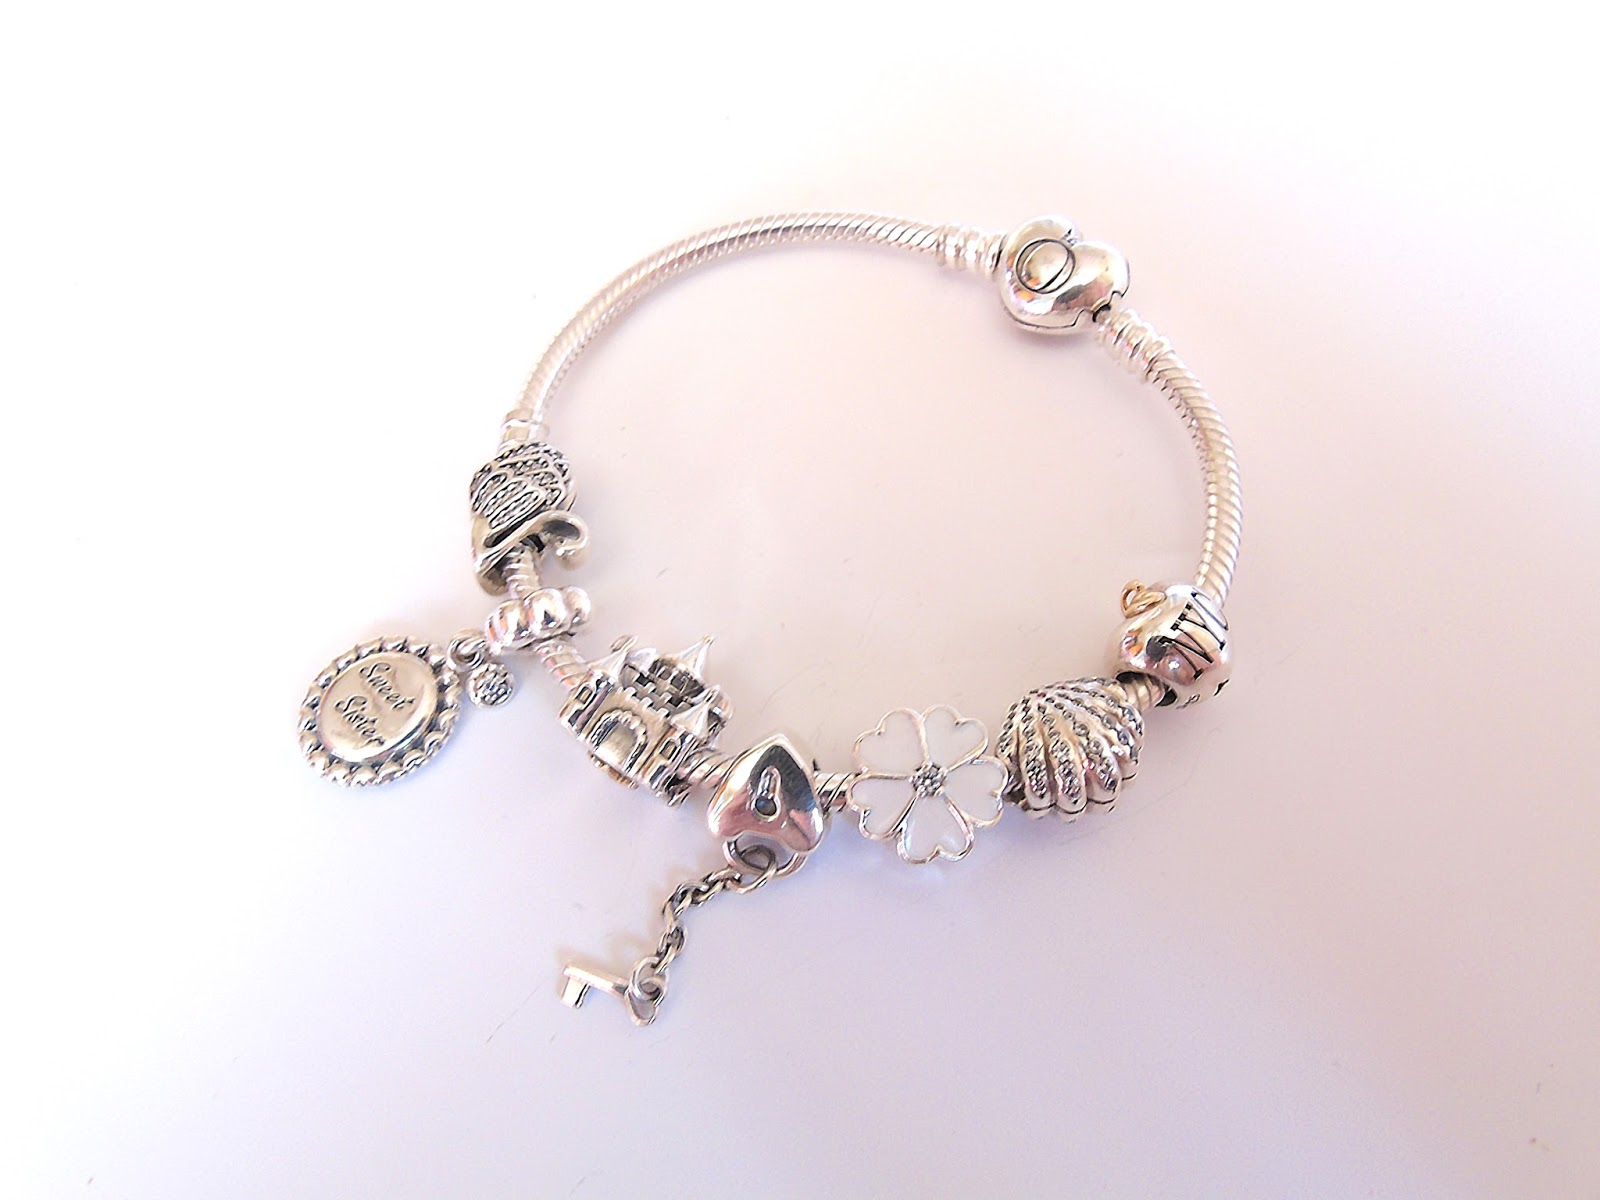 I Recently Received A Pandora Bracelet For My 18th Birthday Which Was So Excited About See Many Blog Posts Peoples Bracelets And The Charms On